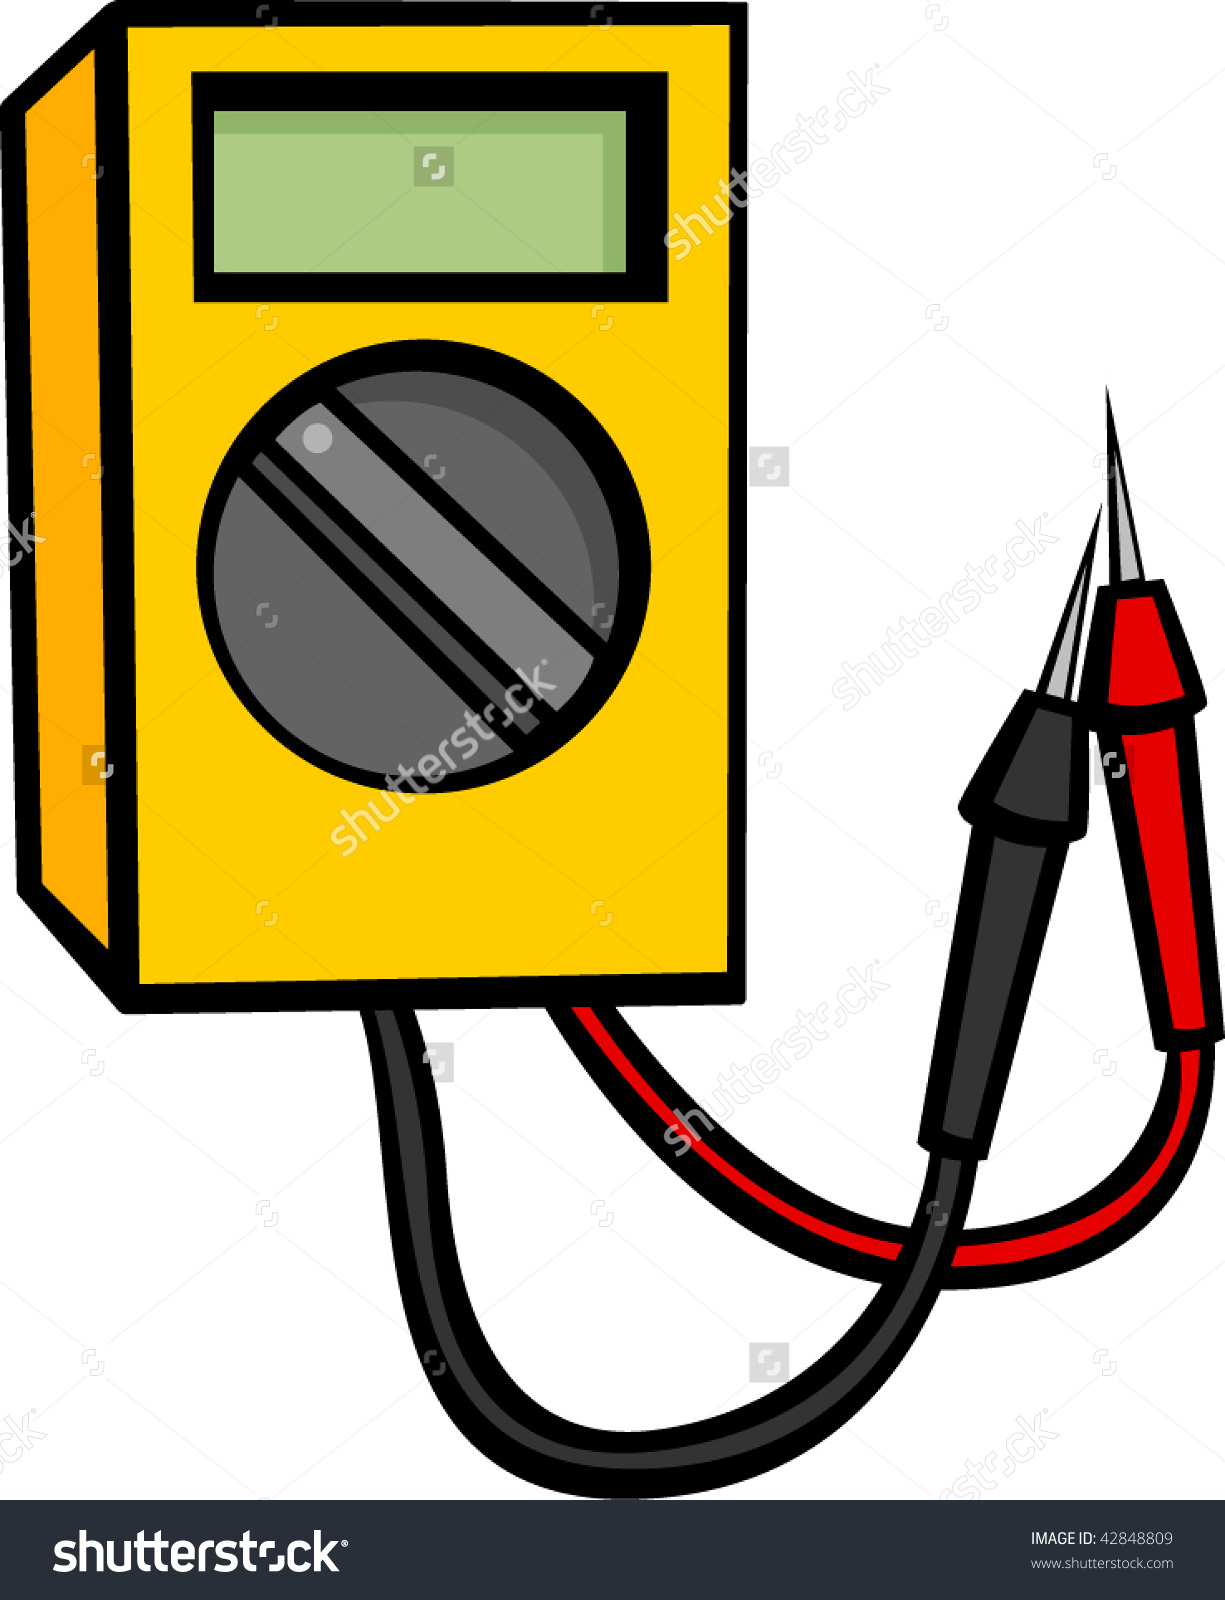 Multimeter Electronics Testing Equipment Stock Vector 42848809.